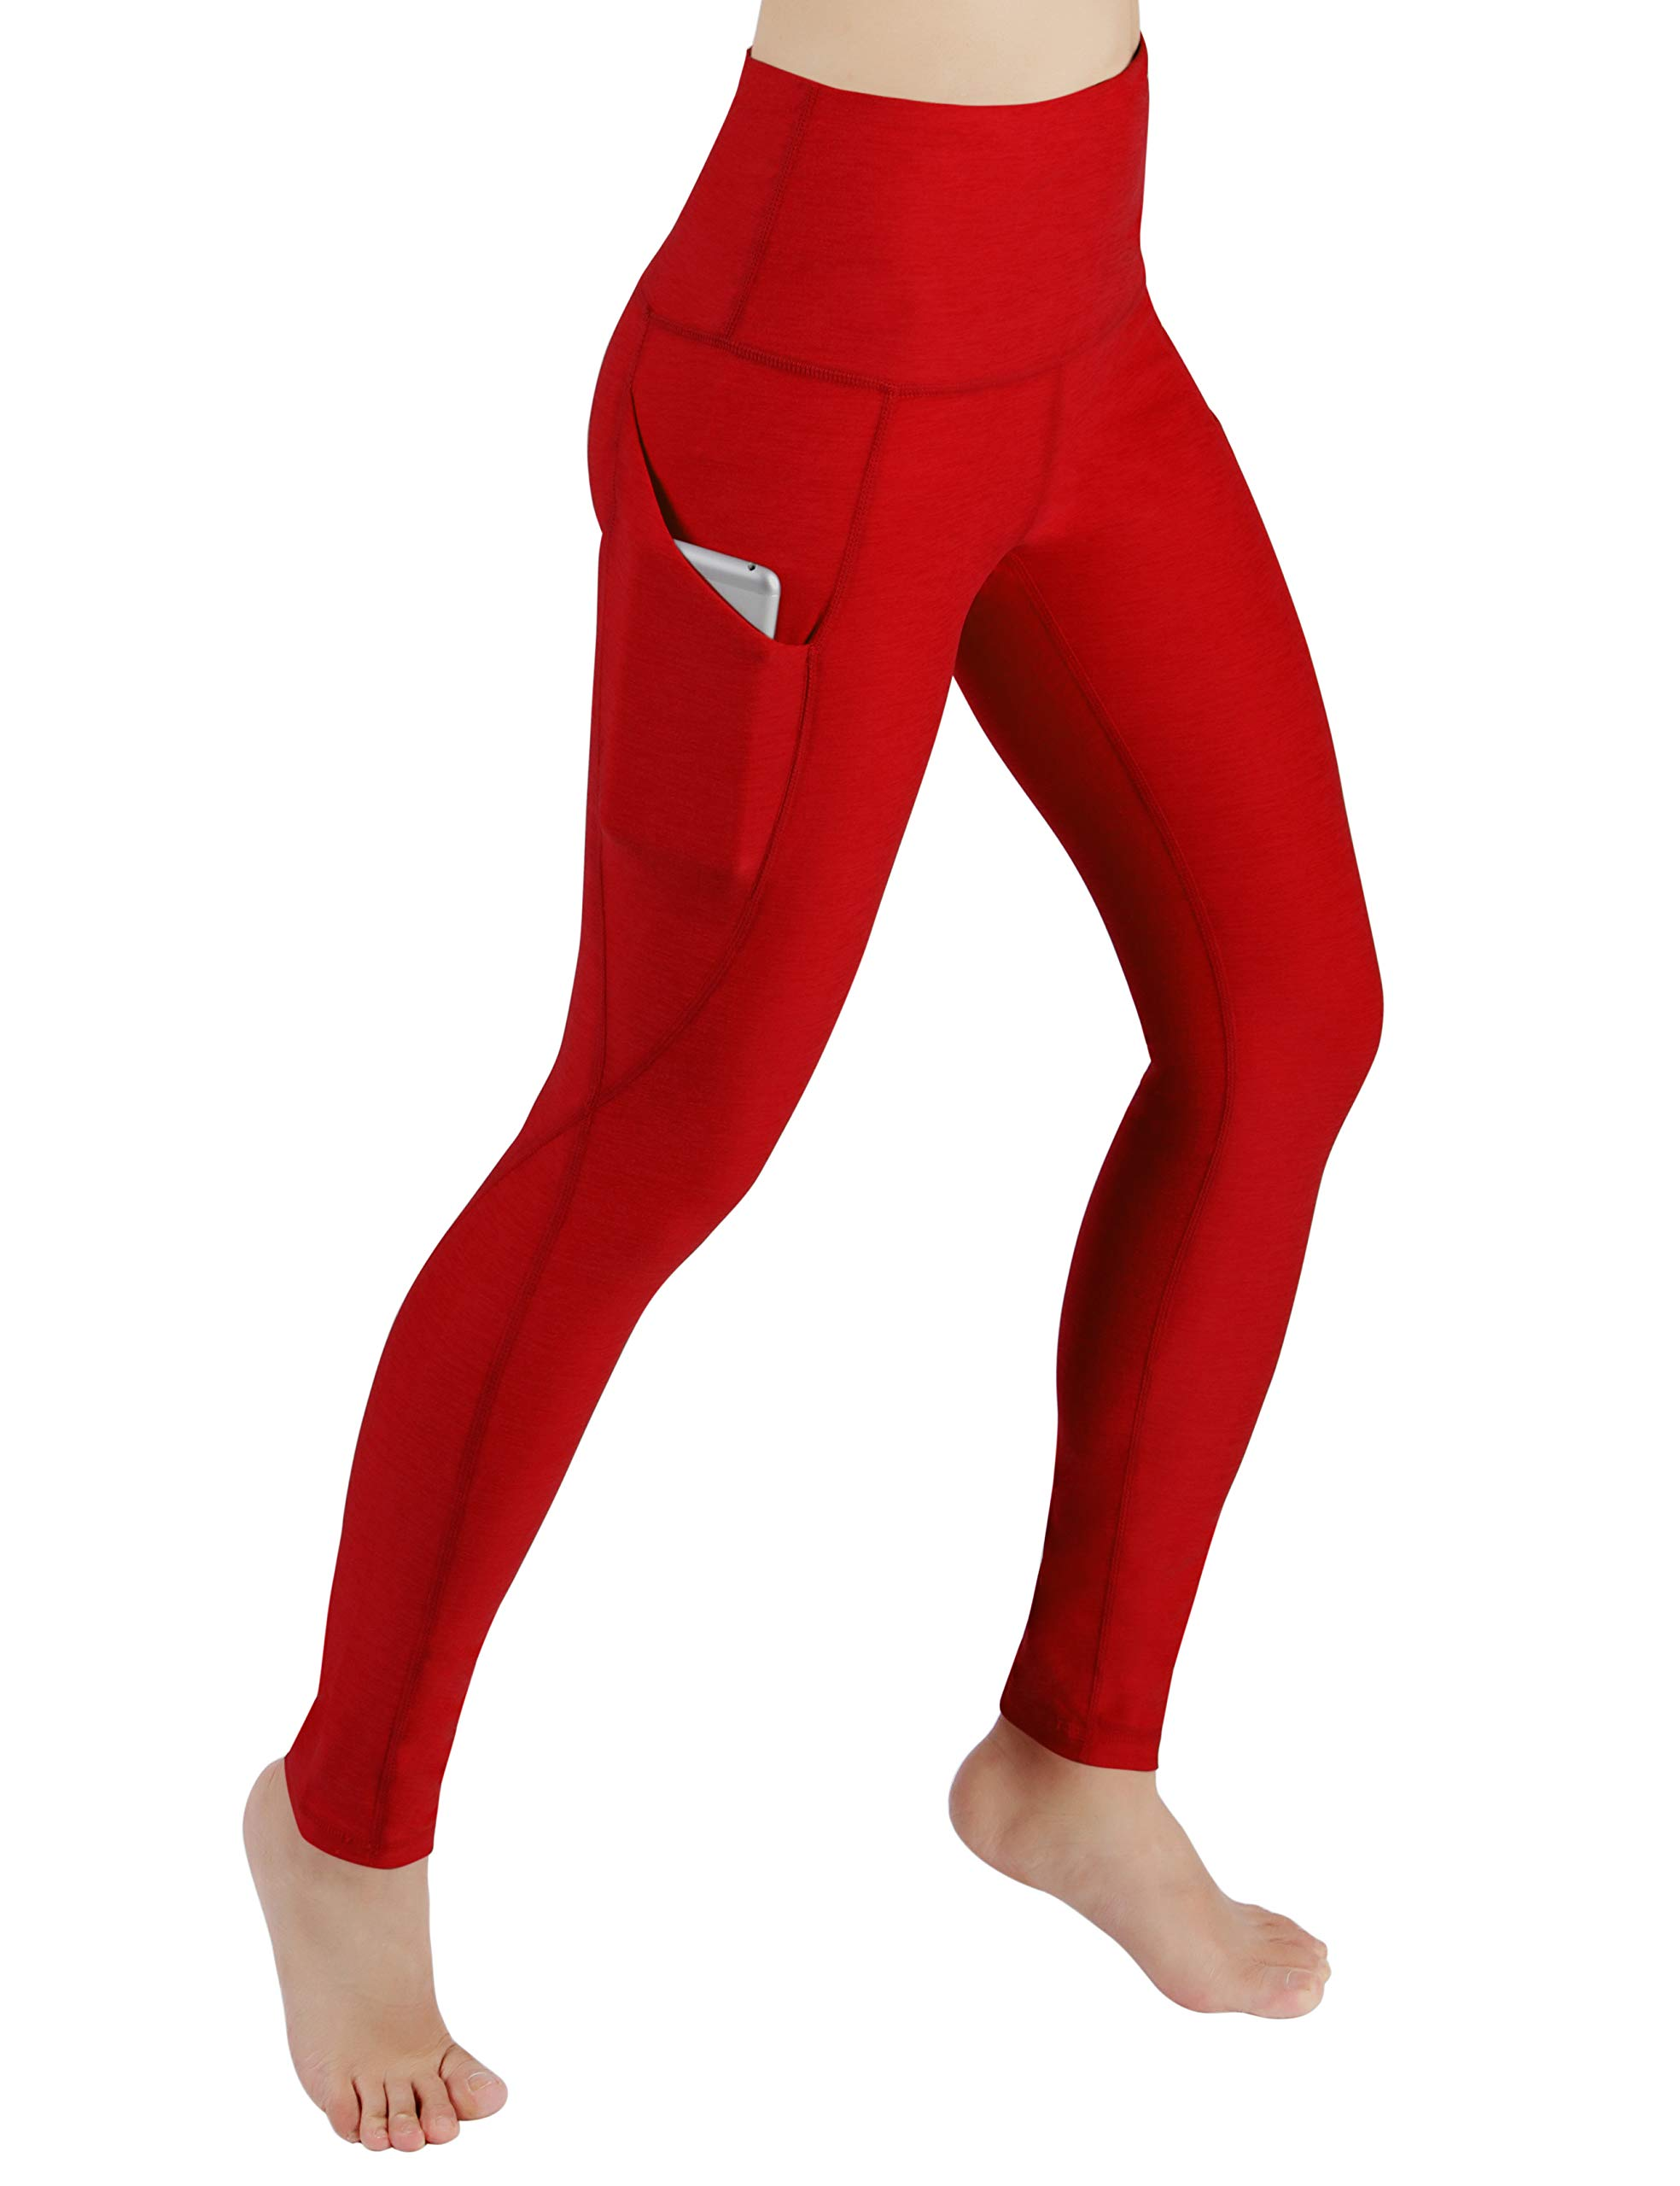 ODODOS Women's High Waist Yoga Pants with Pockets,Tummy Control,Workout Pants Running 4 Way Stretch Yoga Leggings with Pockets,Red,Small by ODODOS